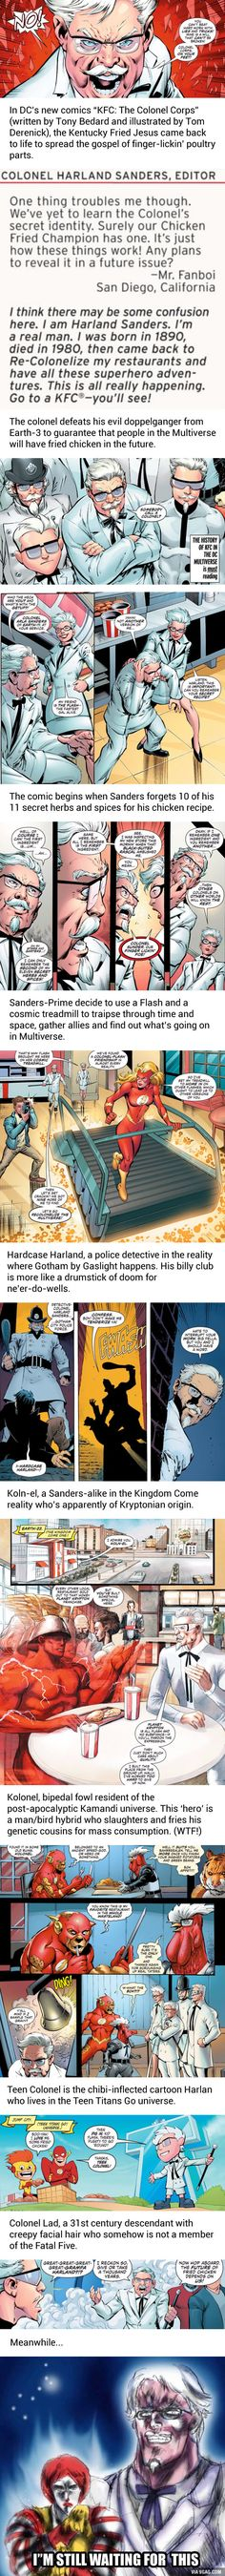 DC's New KFC Comic Turns Colonel Sanders Into Fried Chicken Jesus Comic Book Publishers, Comic Books, Colonel Sanders, Time Warner, American Comics, Kfc, Dc Universe, Fried Chicken, Best Funny Pictures